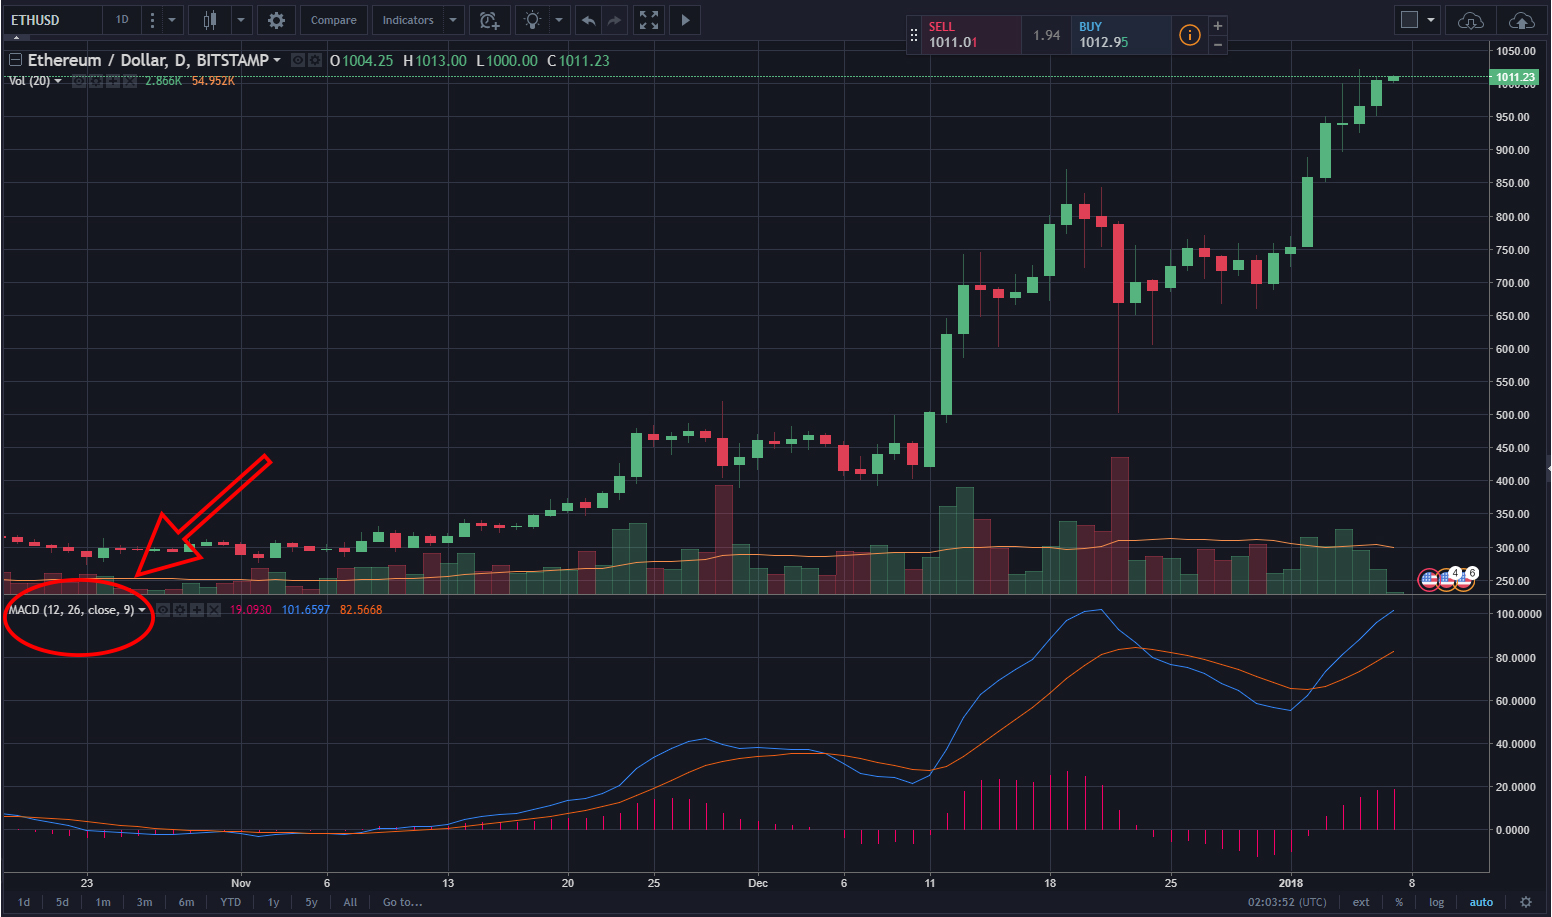 Best moving average for daytrading cryptocurrency